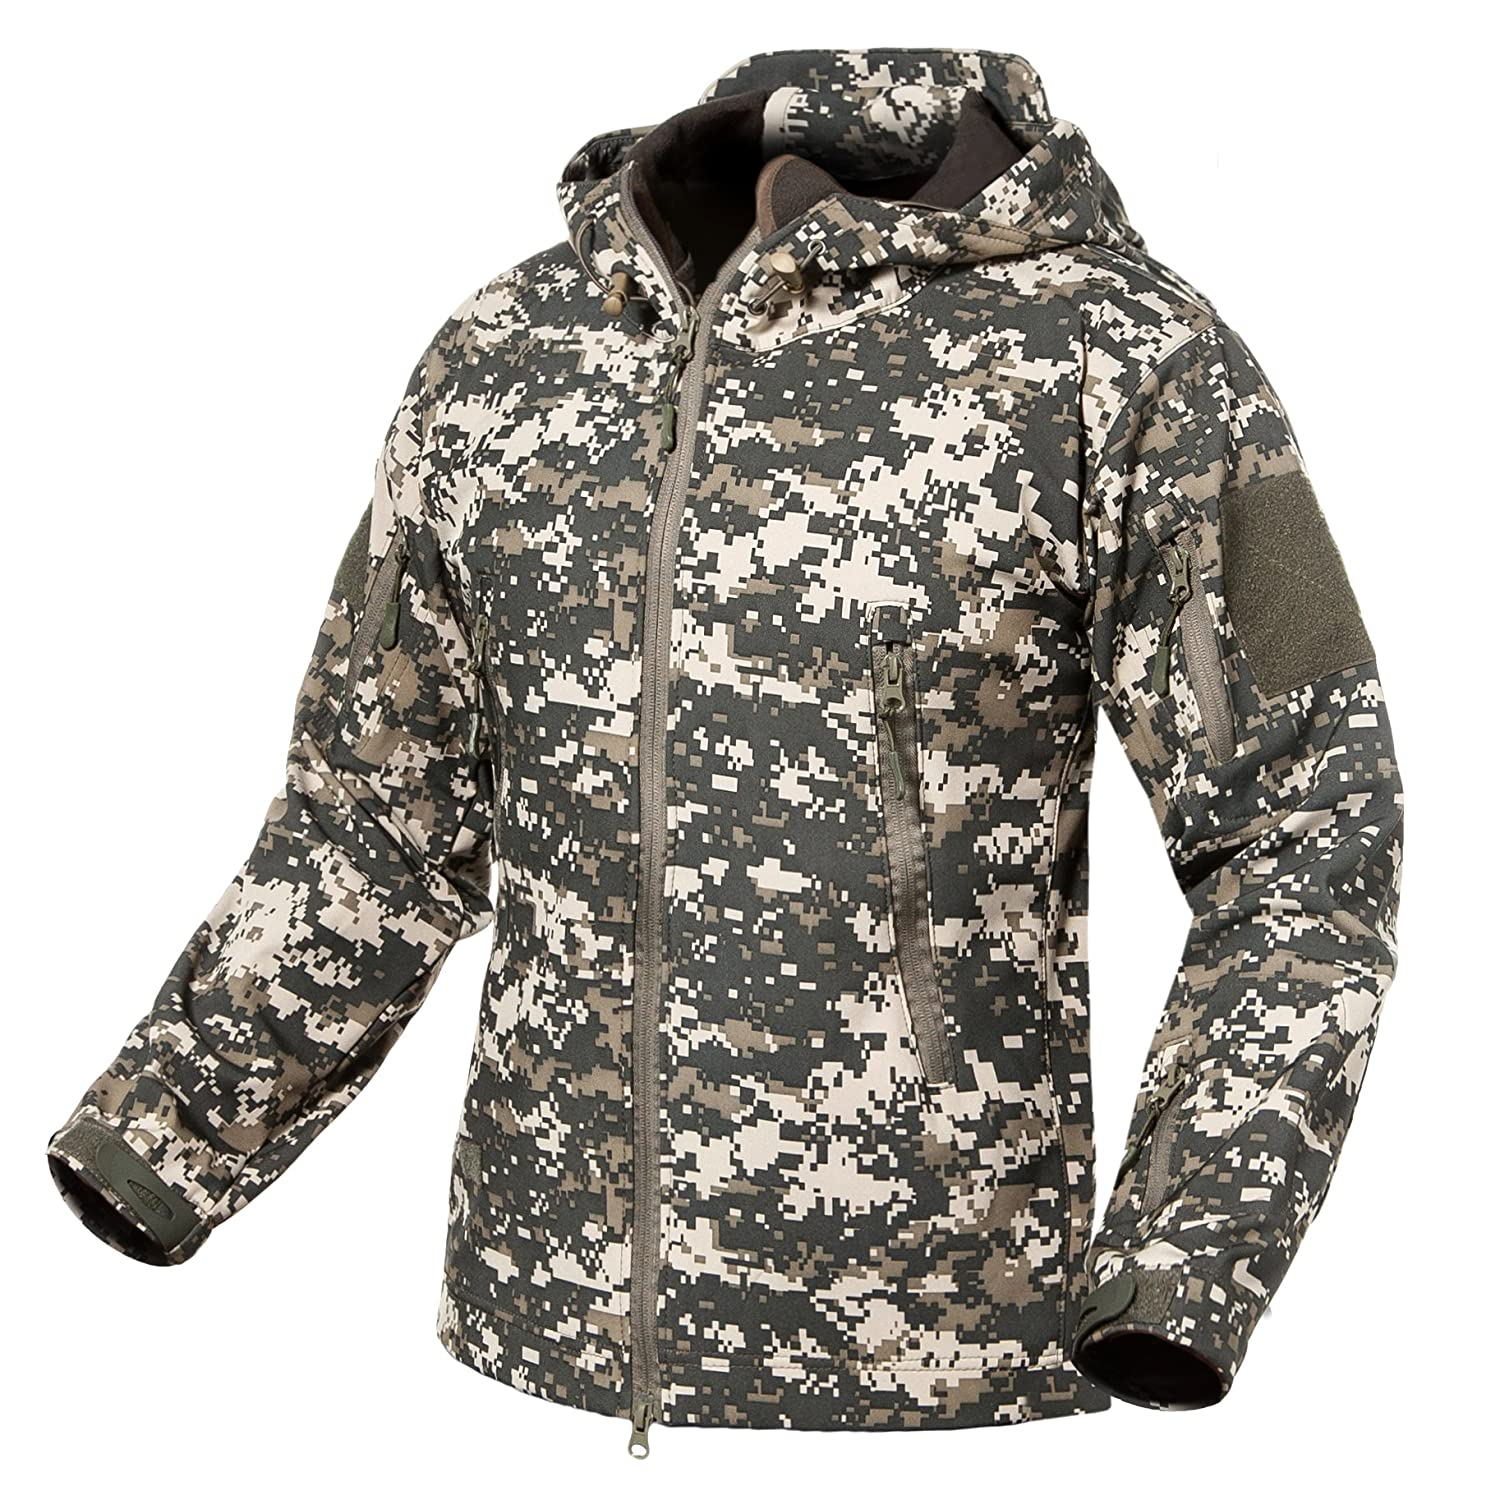 ReFire Gear Men\u0027s Soft Shell Military Tactical Jacket Outdoor Camouflage  Hunting Fleece Hooded Coat